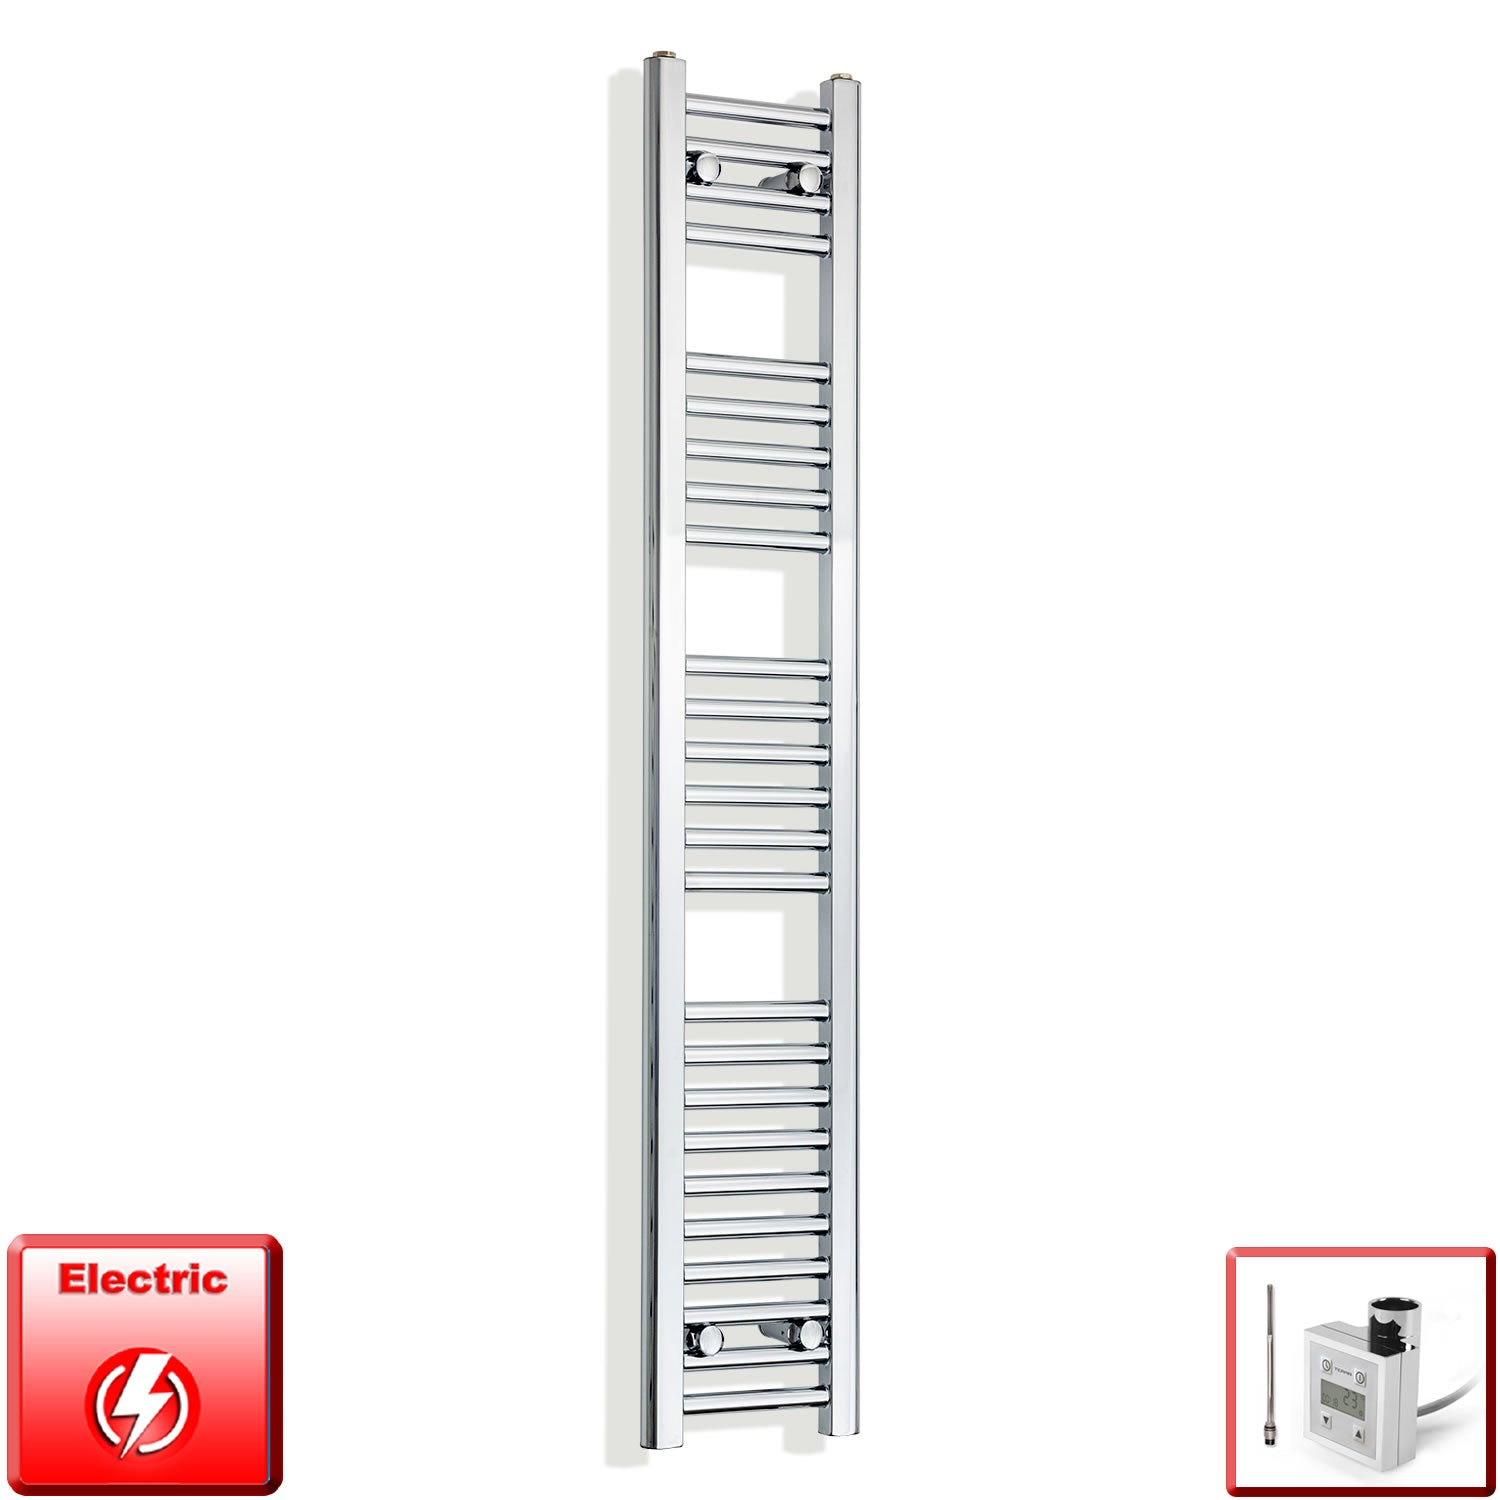 200mm Wide 1400mm High Flat Chrome Pre-Filled Electric Heated Towel Rail Radiator HTR,KTX-3 Thermostatic Element